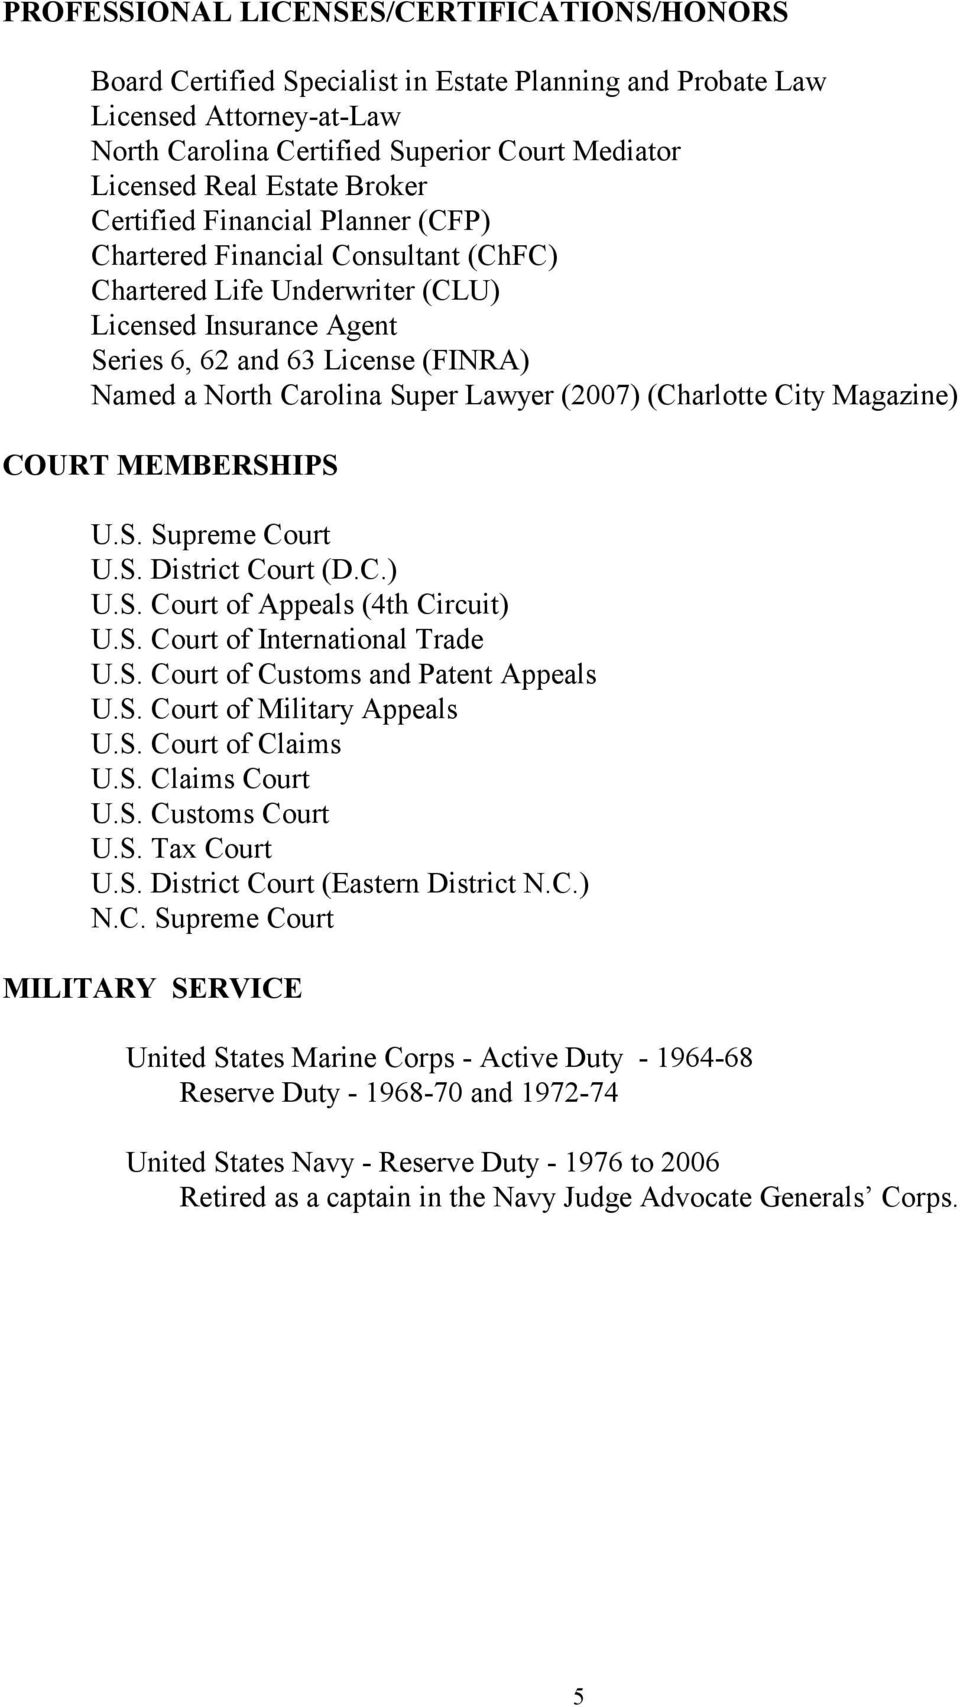 Carolina Super Lawyer (2007) (Charlotte City Magazine) COURT MEMBERSHIPS U.S. Supreme Court U.S. District Court (D.C.) U.S. Court of Appeals (4th Circuit) U.S. Court of International Trade U.S. Court of Customs and Patent Appeals U.